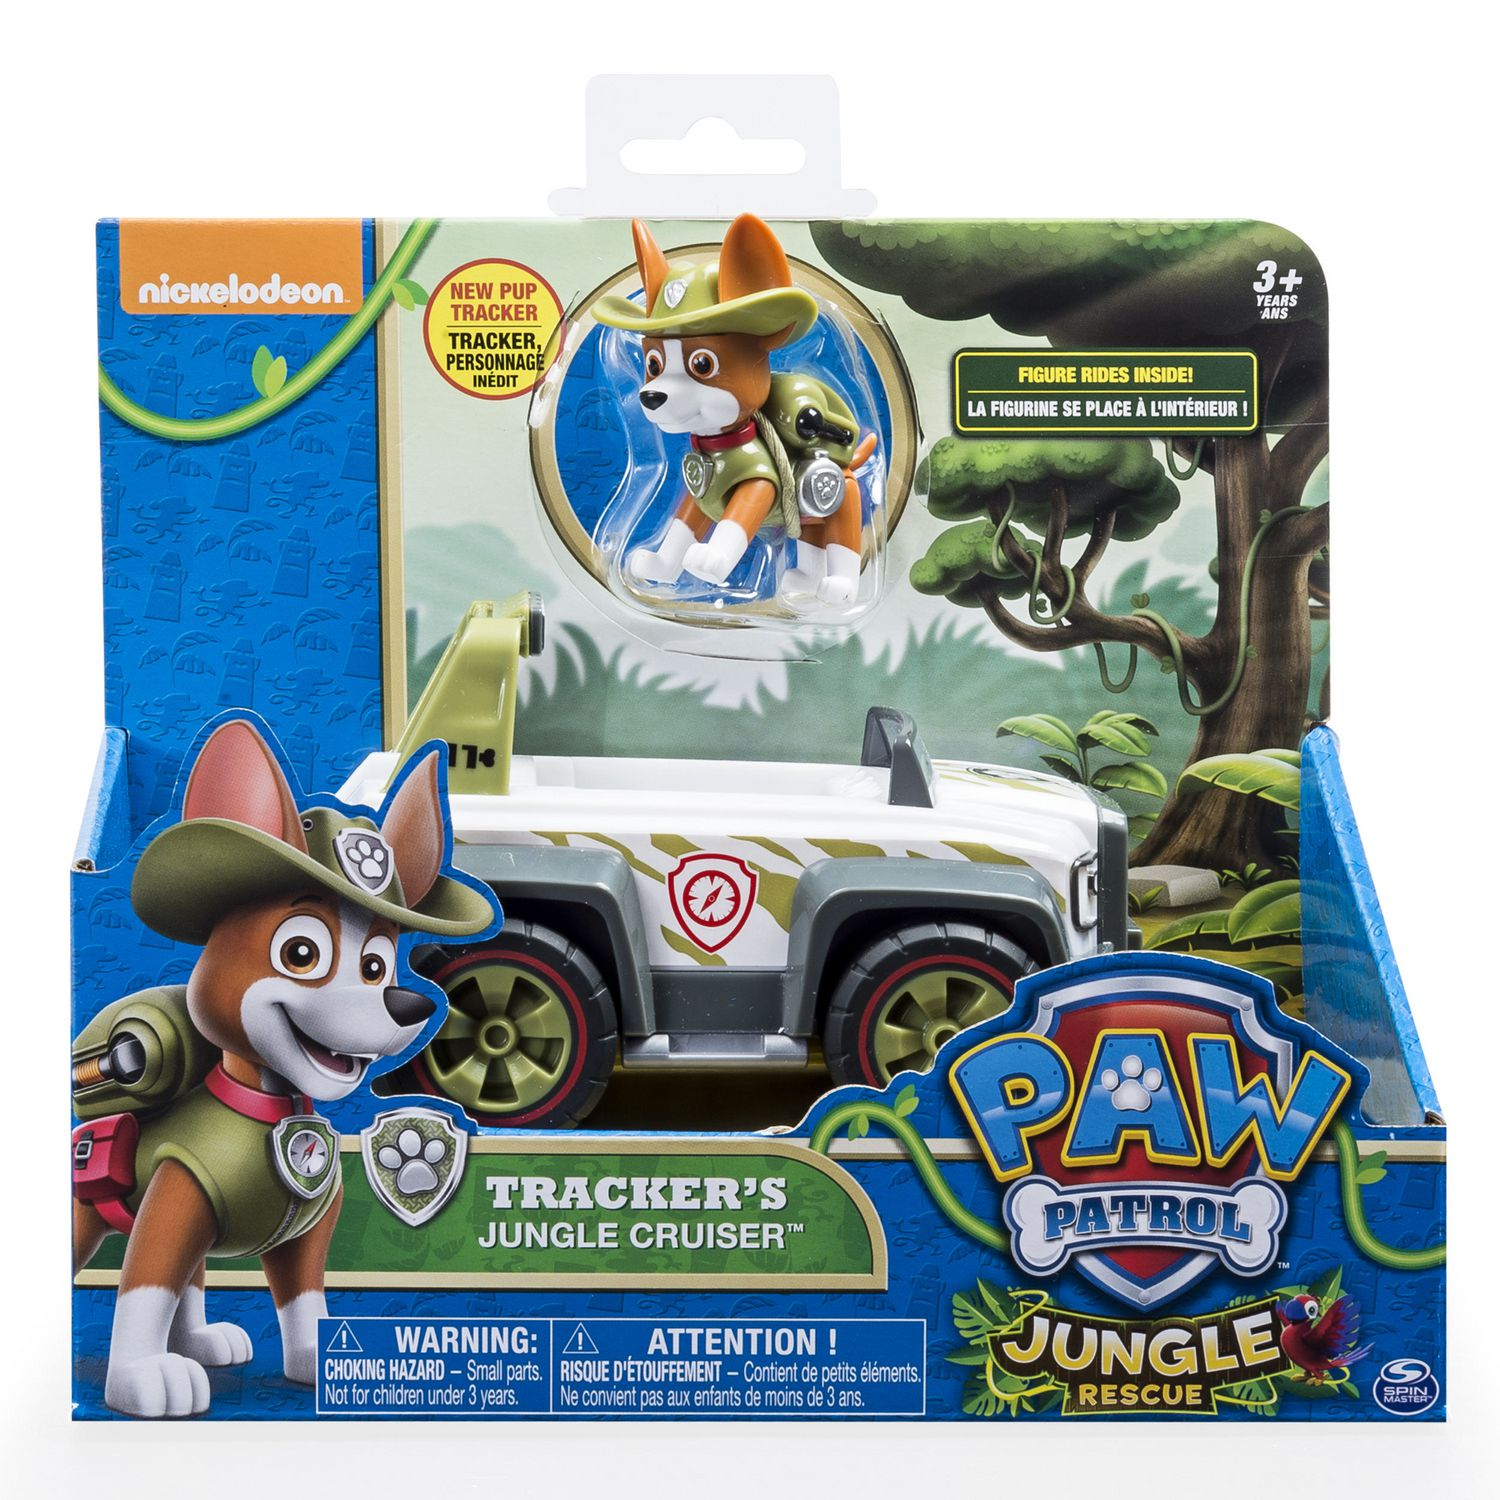 top toys walmart paw patrol jungle rescue trackeracirc s jungle cruiser toy vehicle and action figure